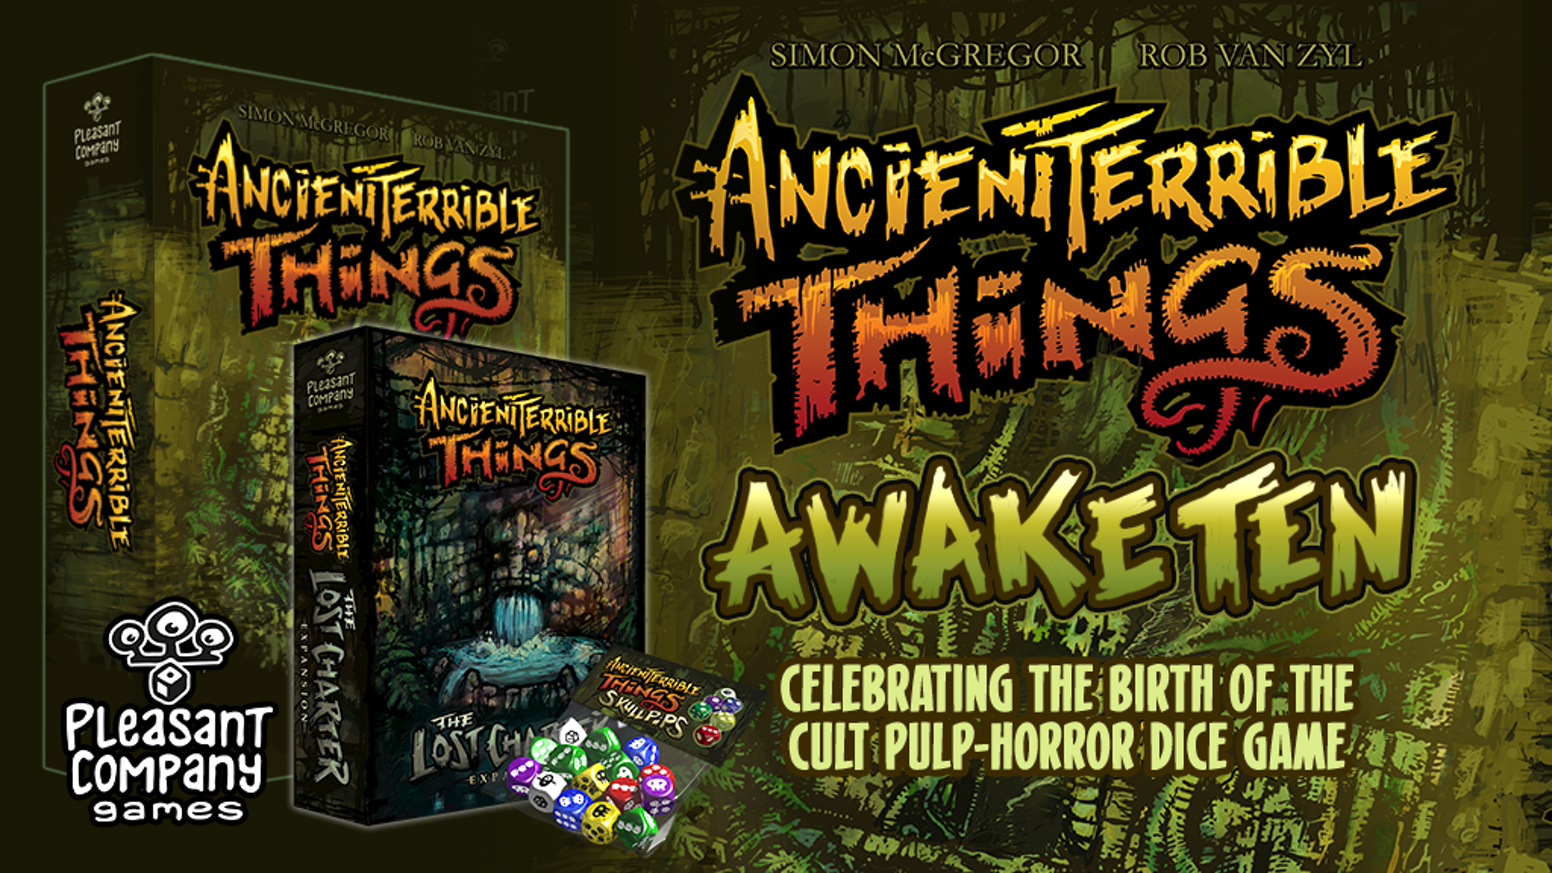 Celebrating 10 years since the conception of the pulp-horror tabletop game.